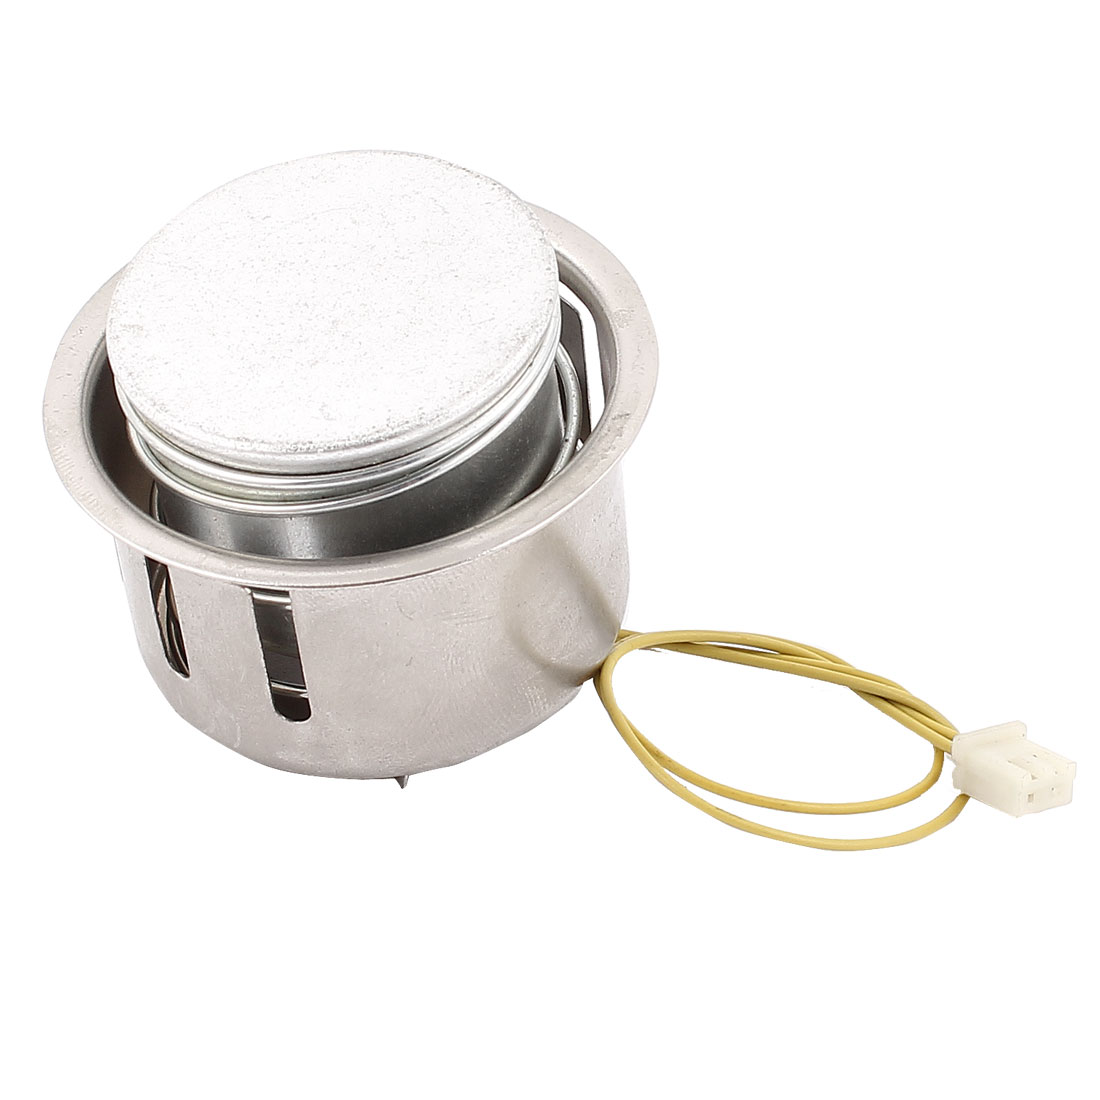 Temperature Limiter 2 Wires Electric Rice Cooker Magnetic Center ...